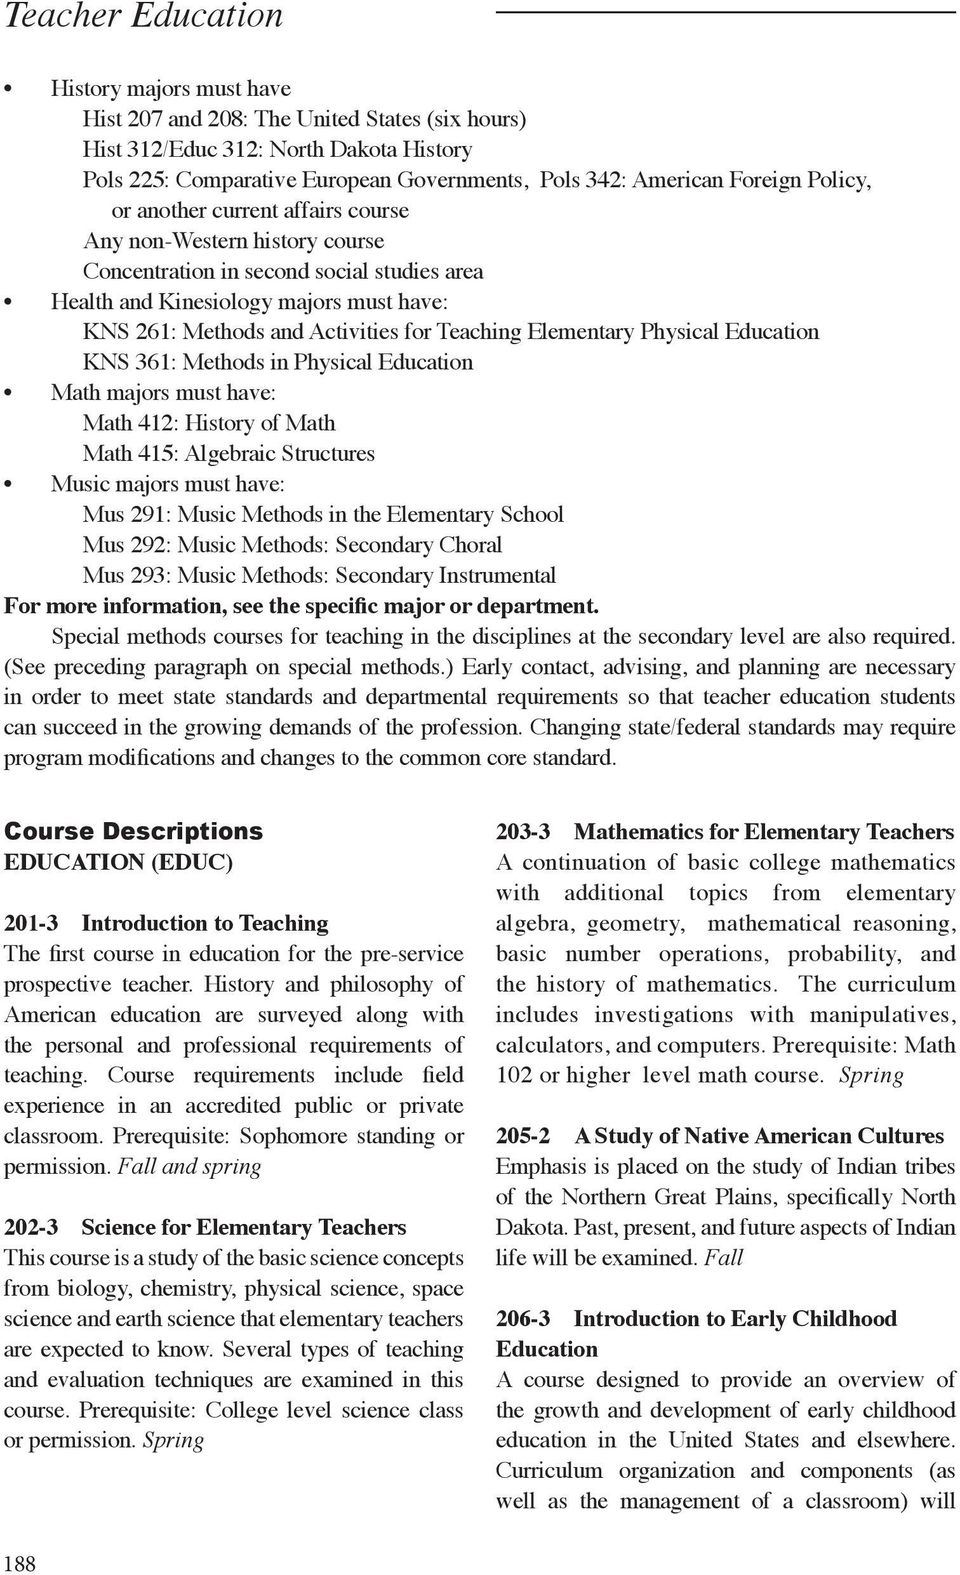 KNS 61: Methods in Physical Education Math majs must have: Math 412: Histy of Math Math 415: Algebraic Structures Music majs must have: Mus 291: Music Methods in the Elementary School Mus 292: Music